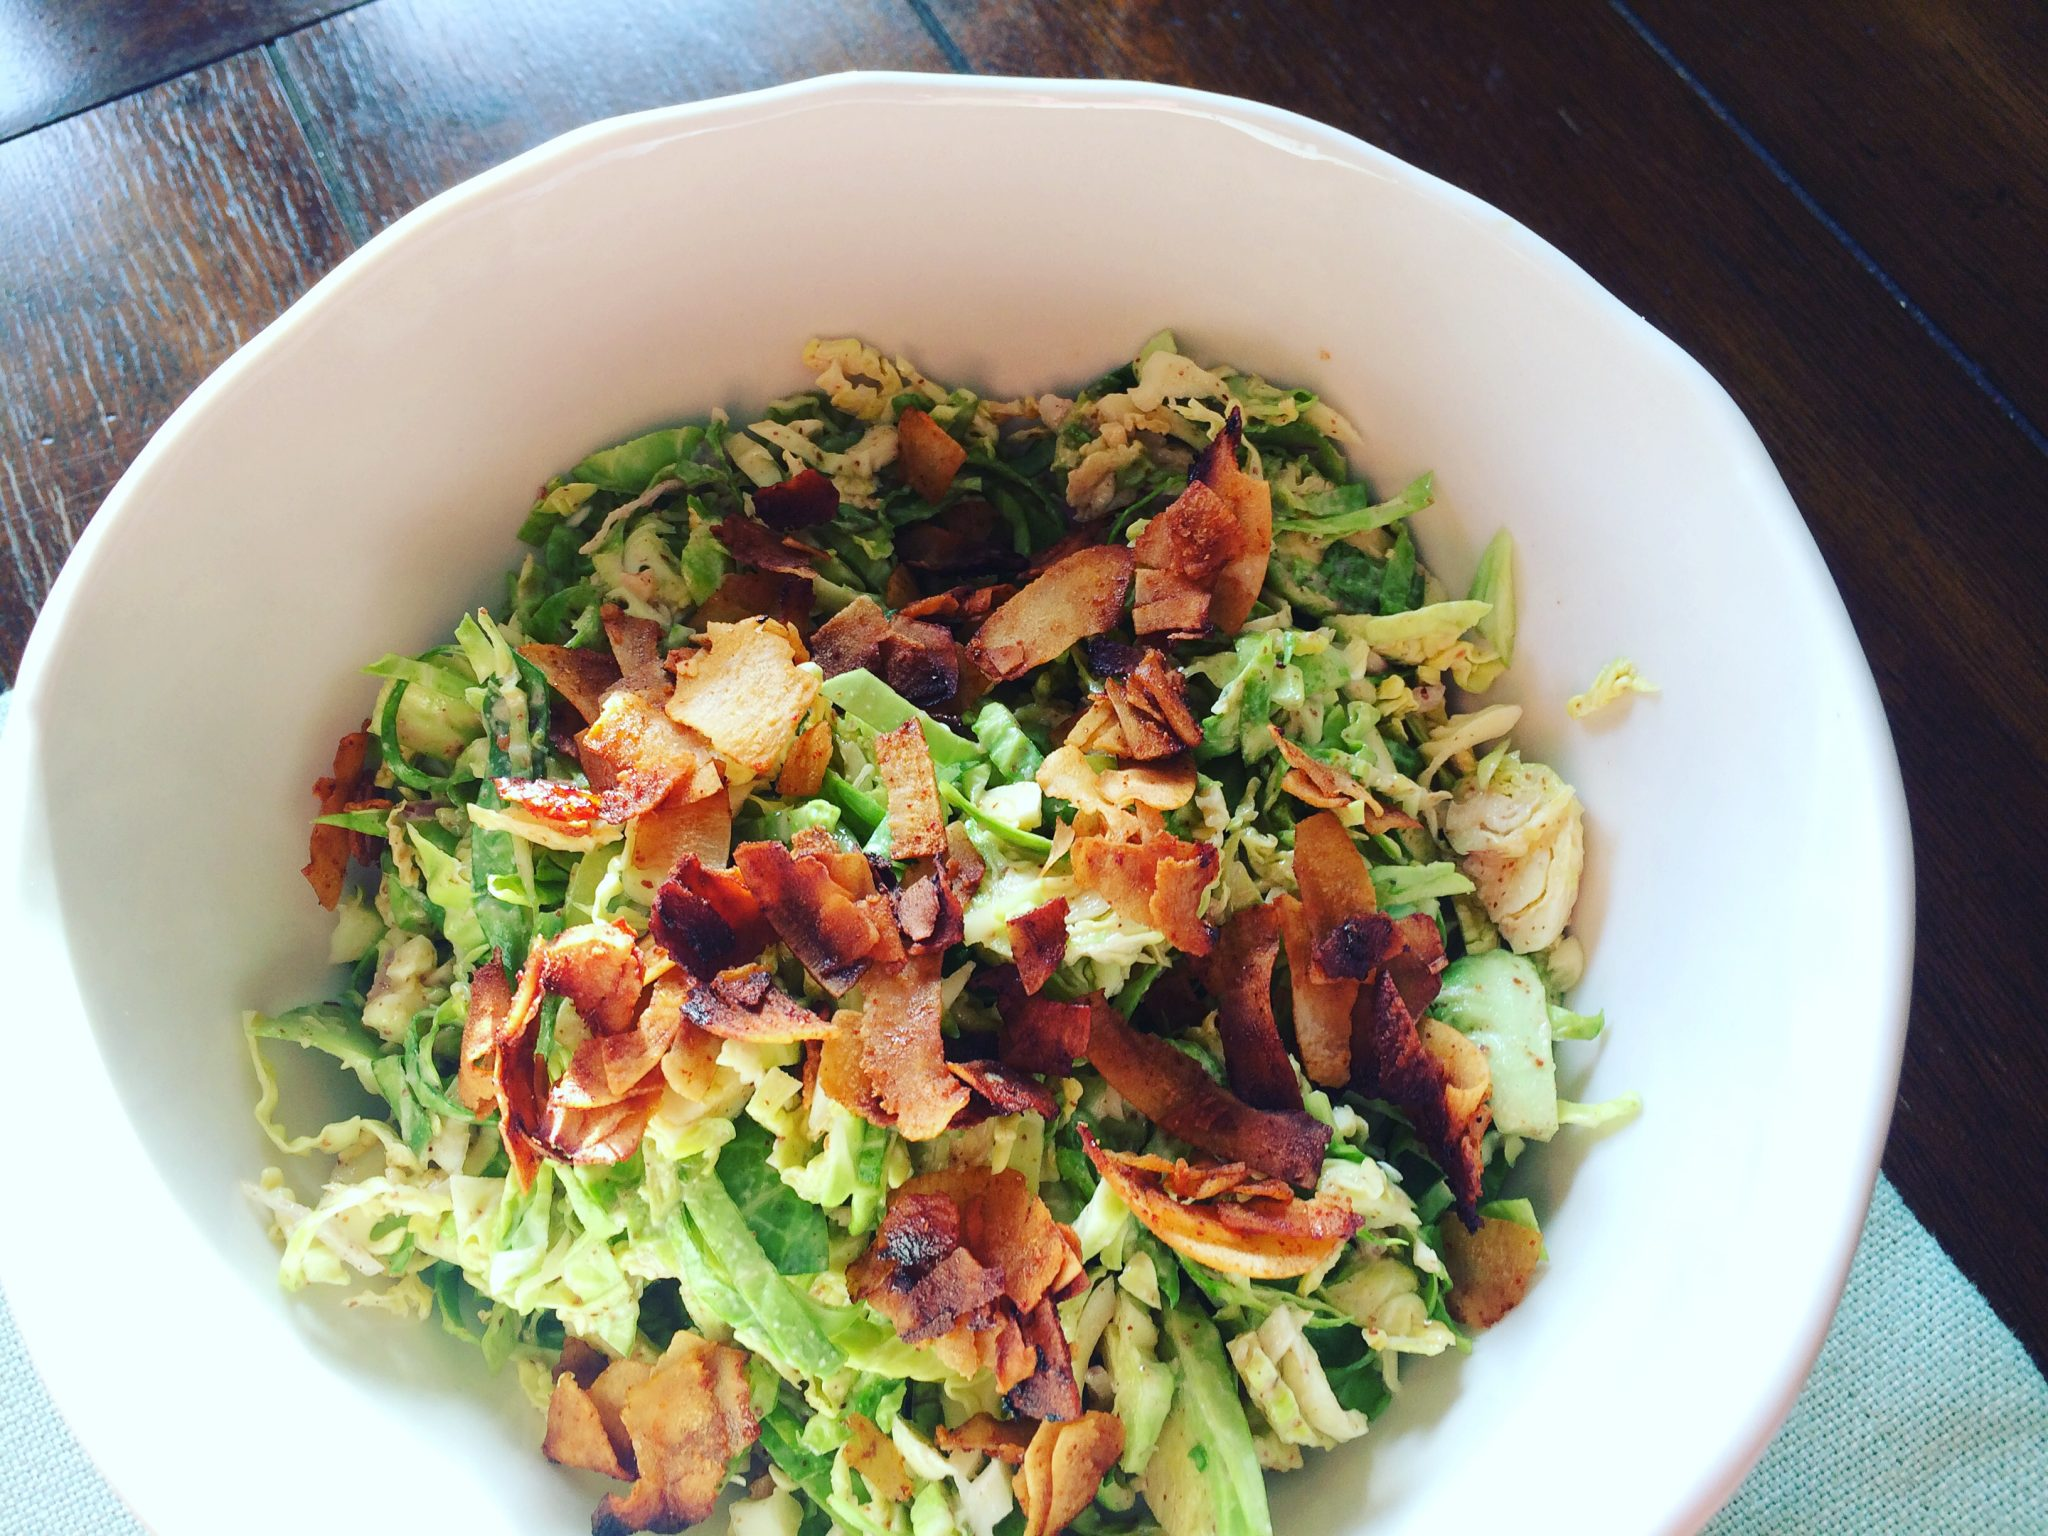 Creamy Almond Butter + Brussels Sprouts Salad with Coconut Bacon